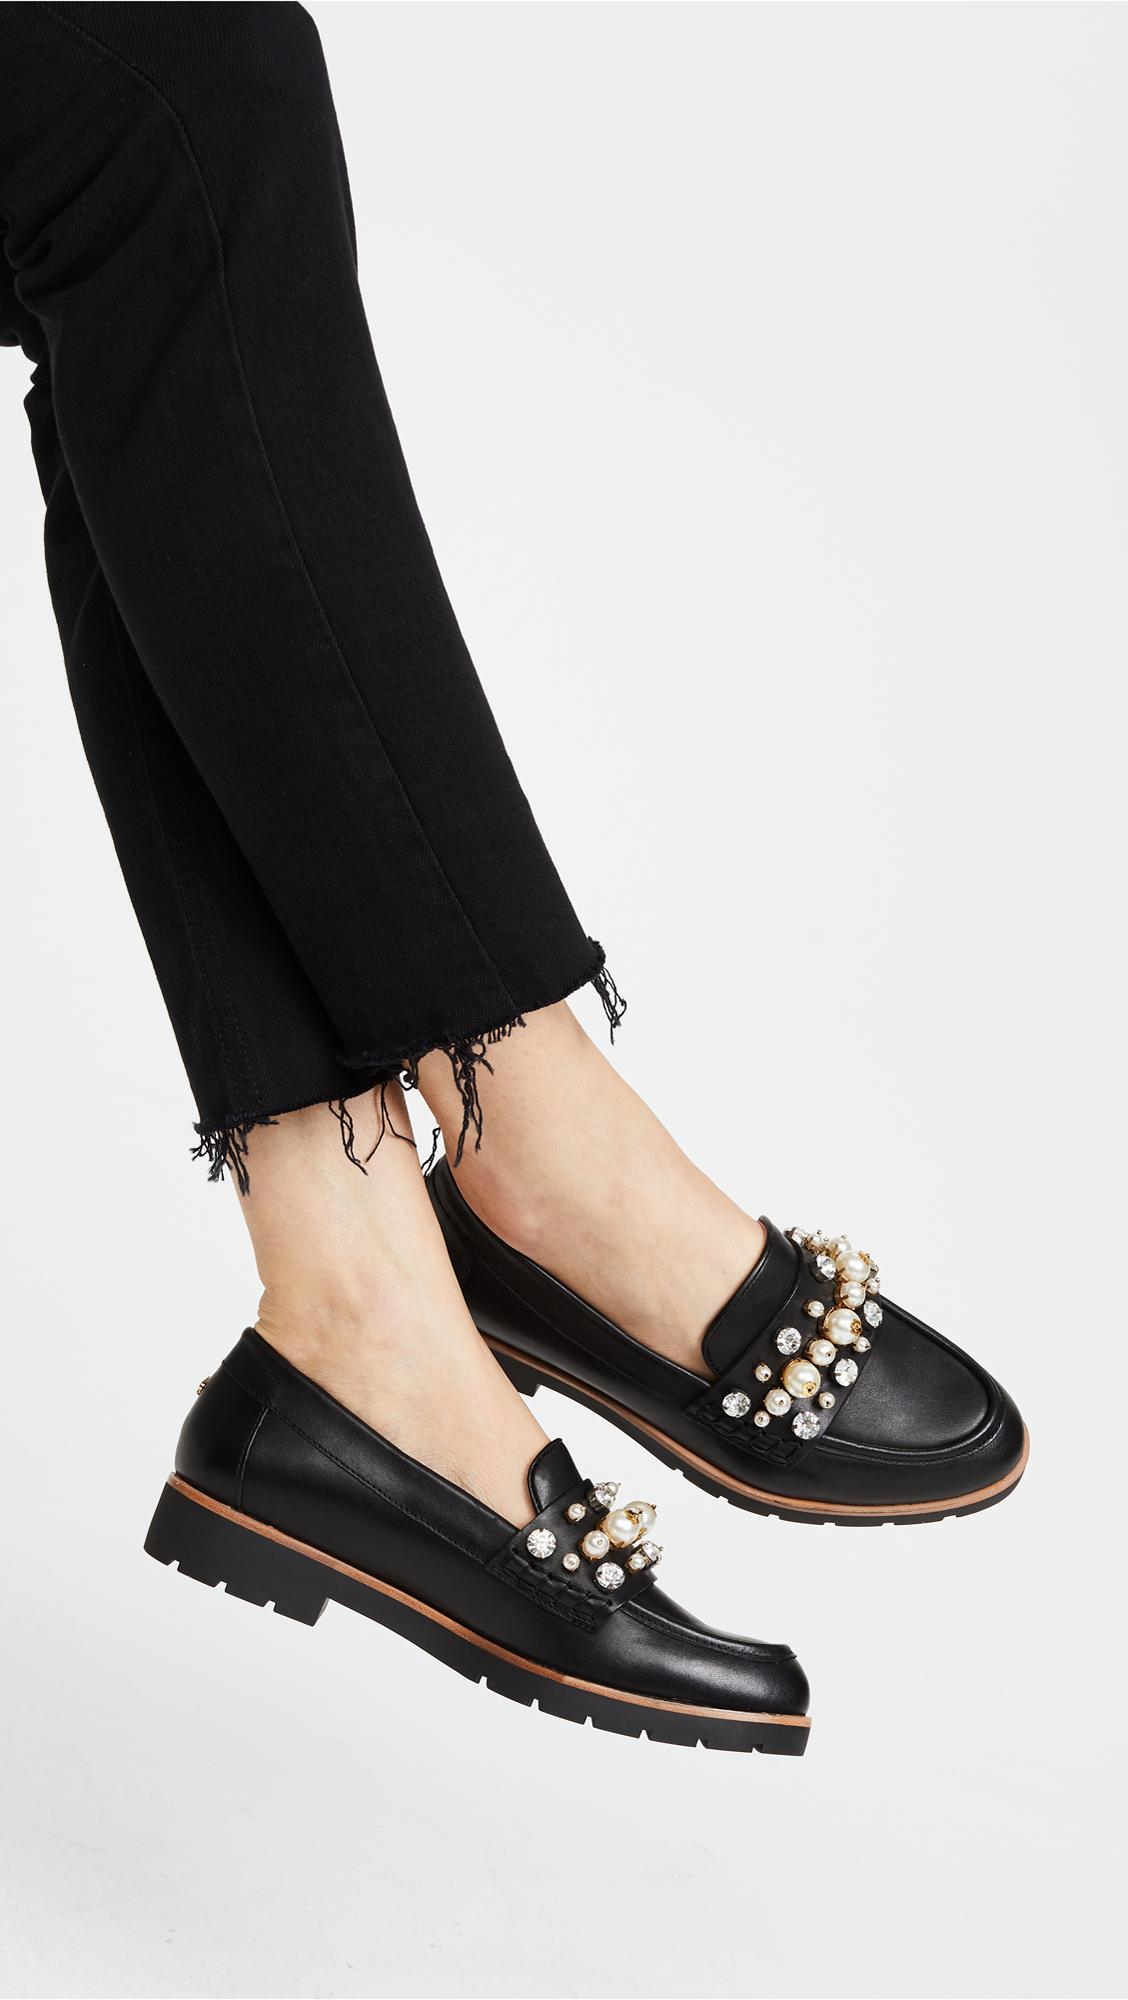 b5a977969aa Lyst - Kate Spade Karry Too Studded Loafers in Black